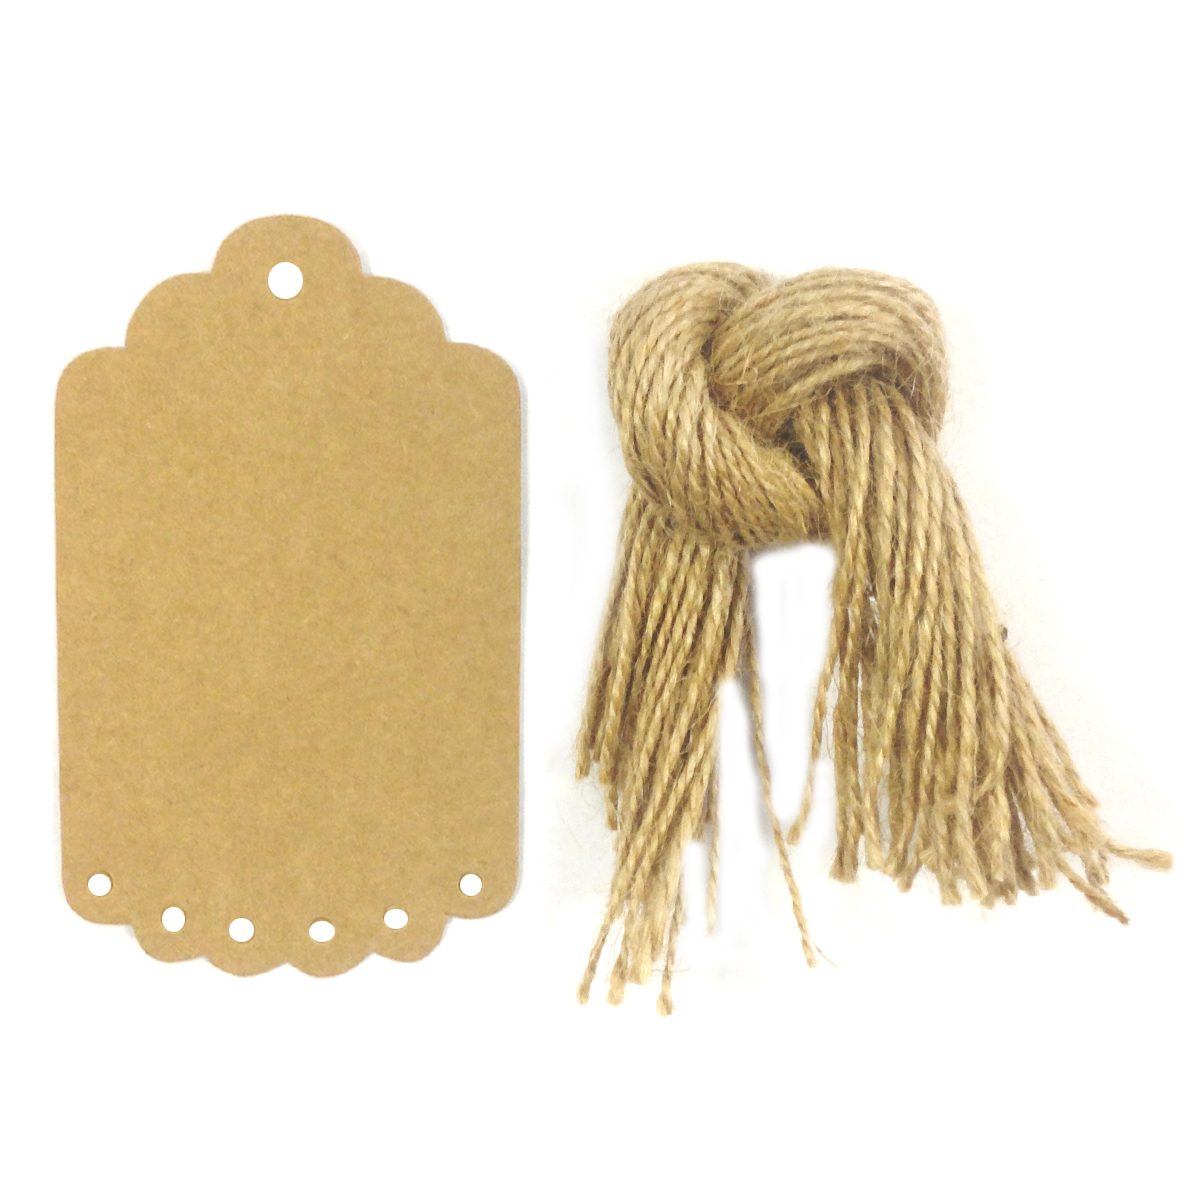 Wrapables® 50 Gift Tags/Kraft Scalloped Edge Hang Tags with Free Cut Strings for Gifts, Crafts and Price Tags, Large